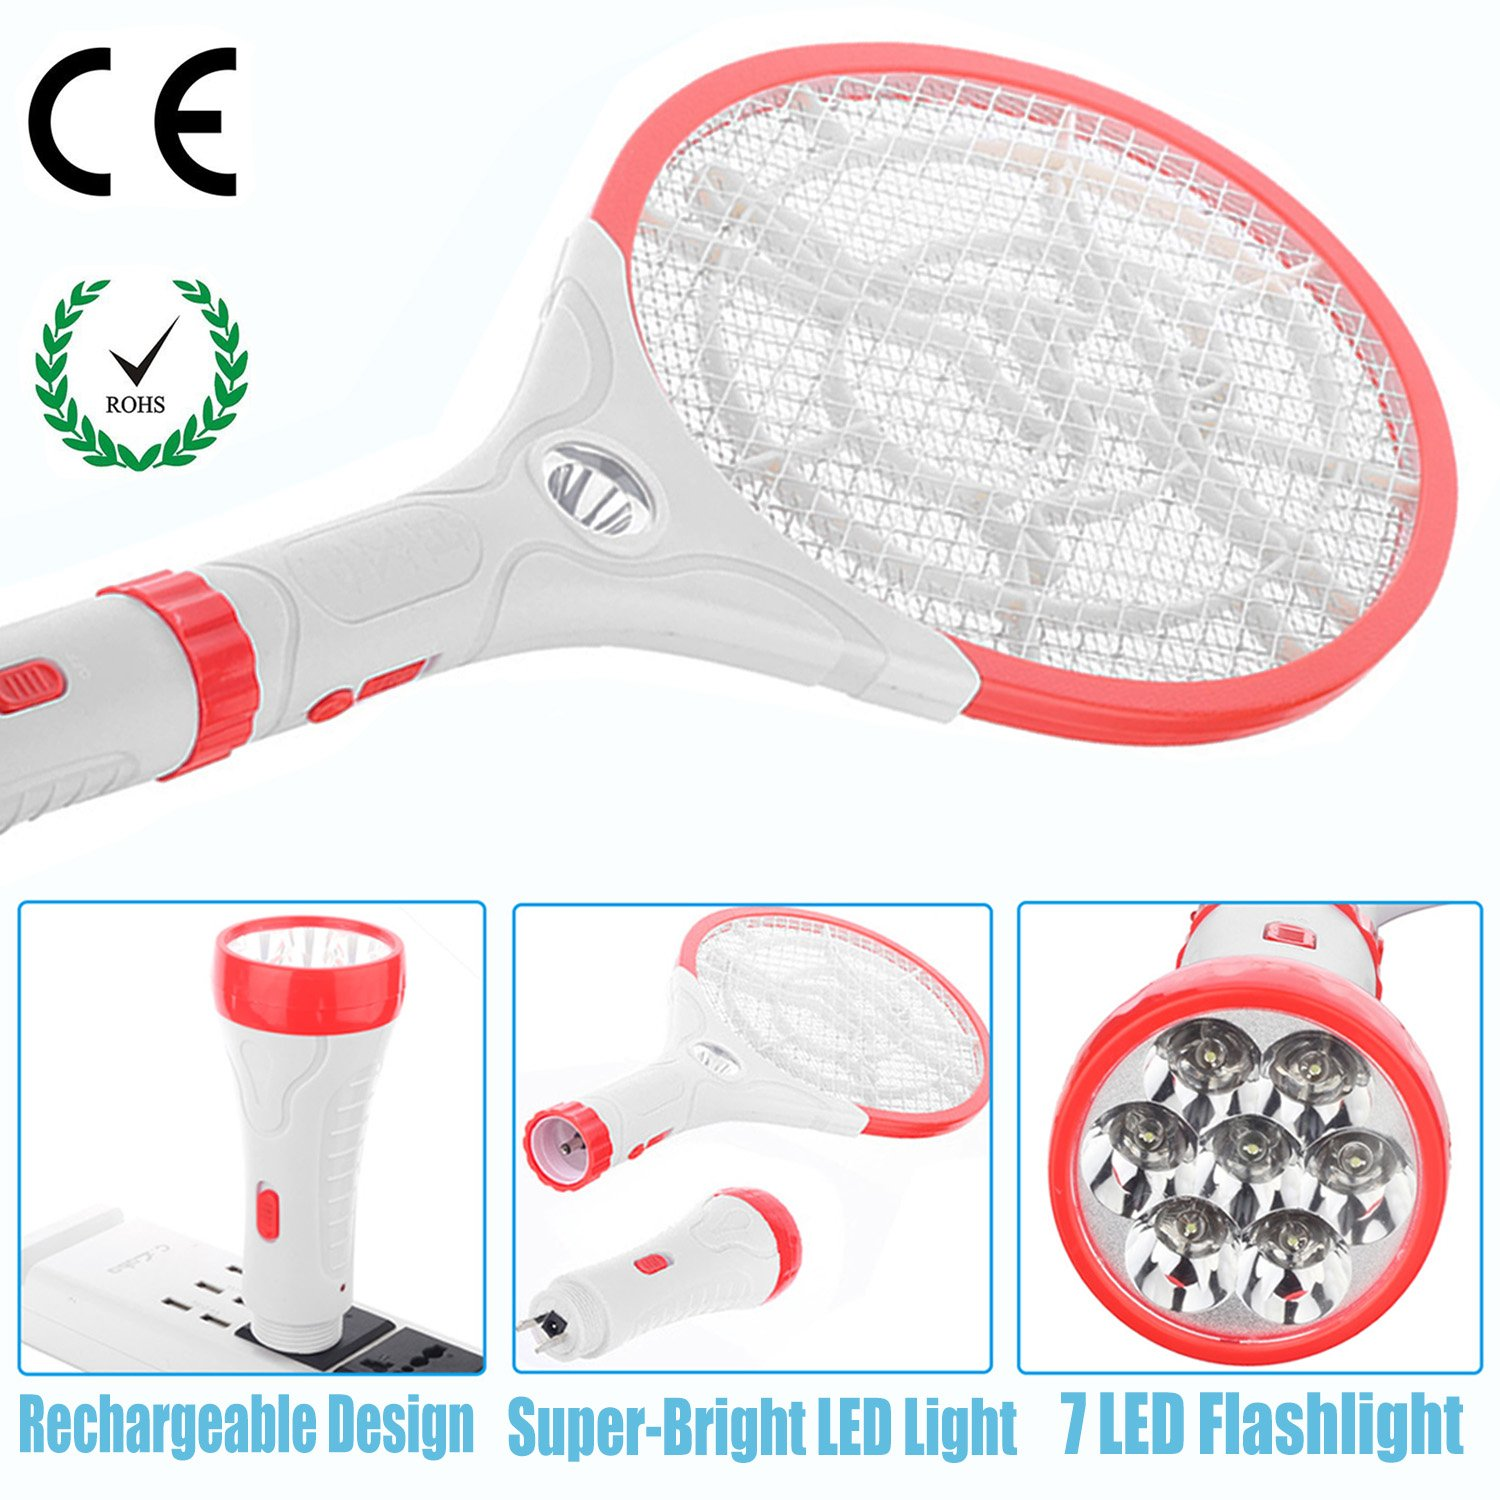 Fly Swatter Electric 3 In 1rechargeable Bug Zapper Mosquito Repellent Circuit Schematic Racket Led Flashlight Super Bright Light Zap The Dark Best Insect Killer